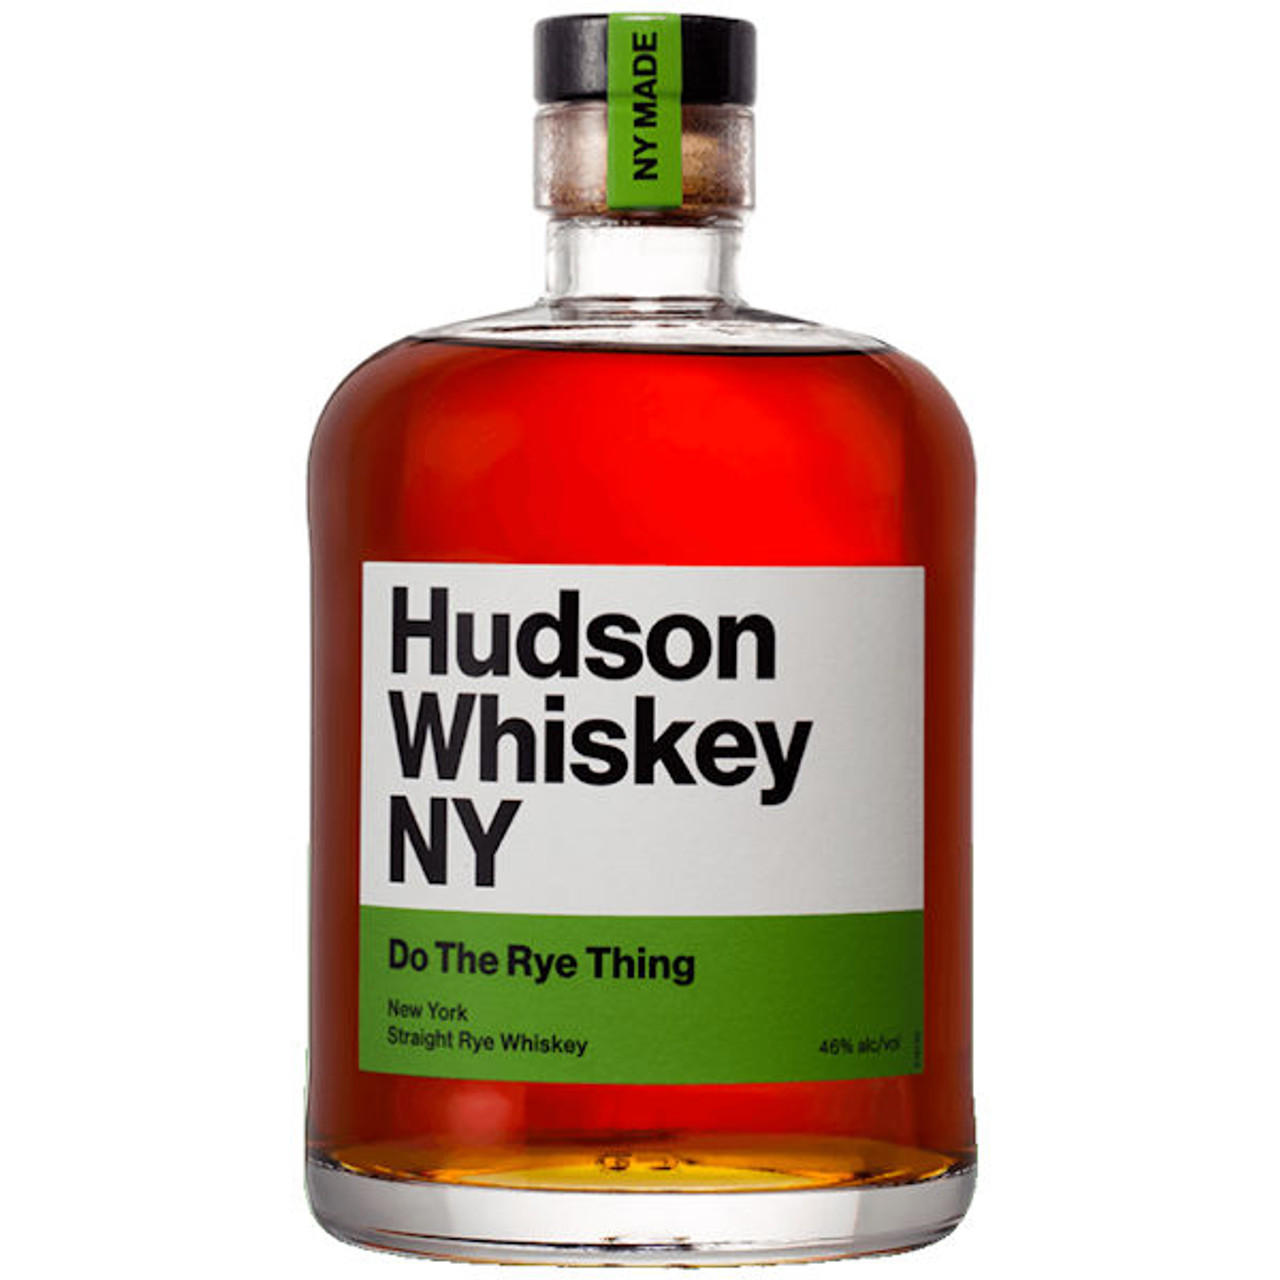 Hudson New York Moonshine Corn Whiskey 375ml